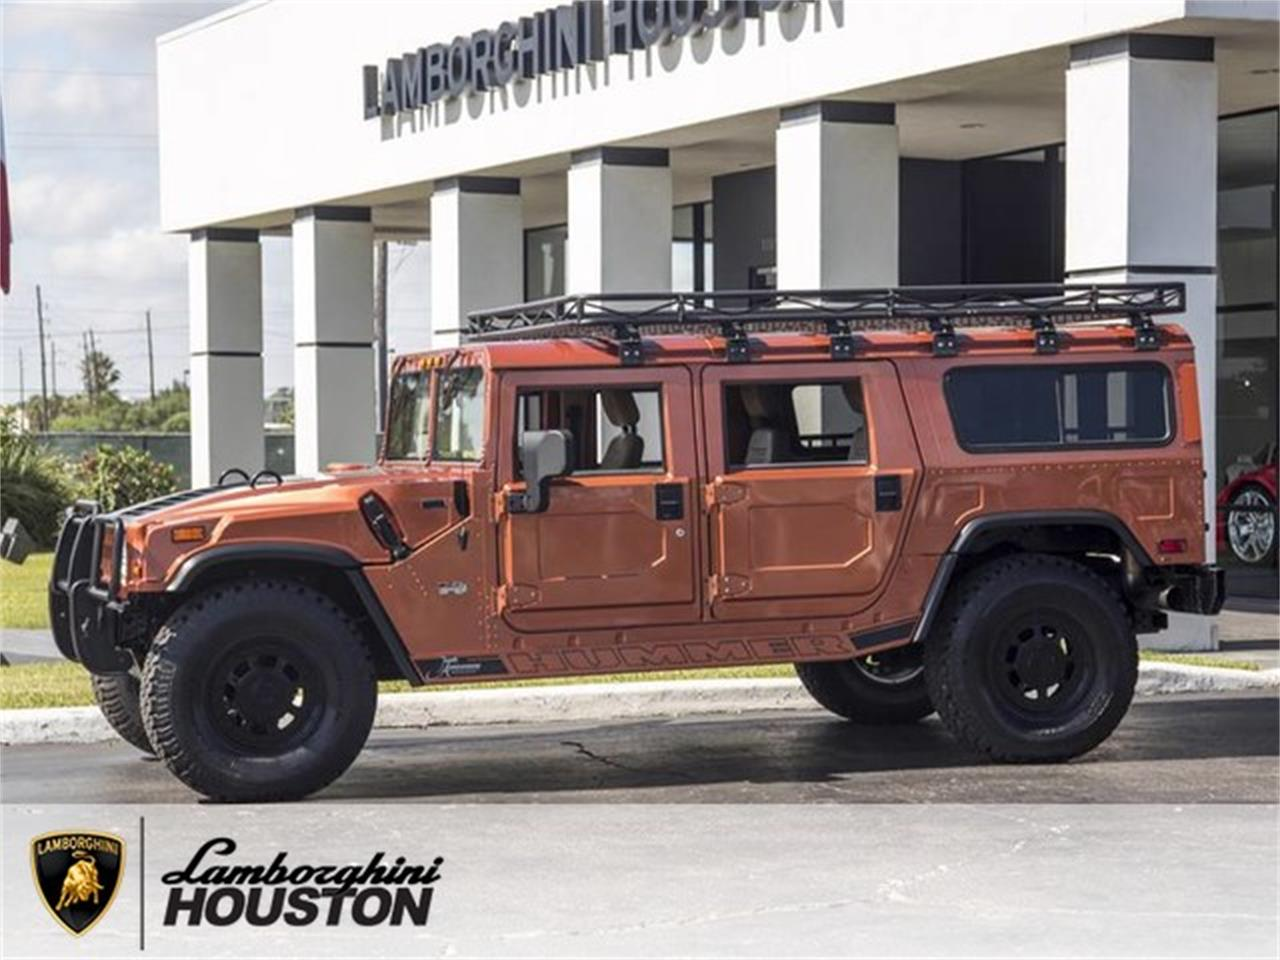 For Sale: 133 Hummer H13 Wagon 130th Anniversary in Houston, Texas | hummer h1 for sale in texas